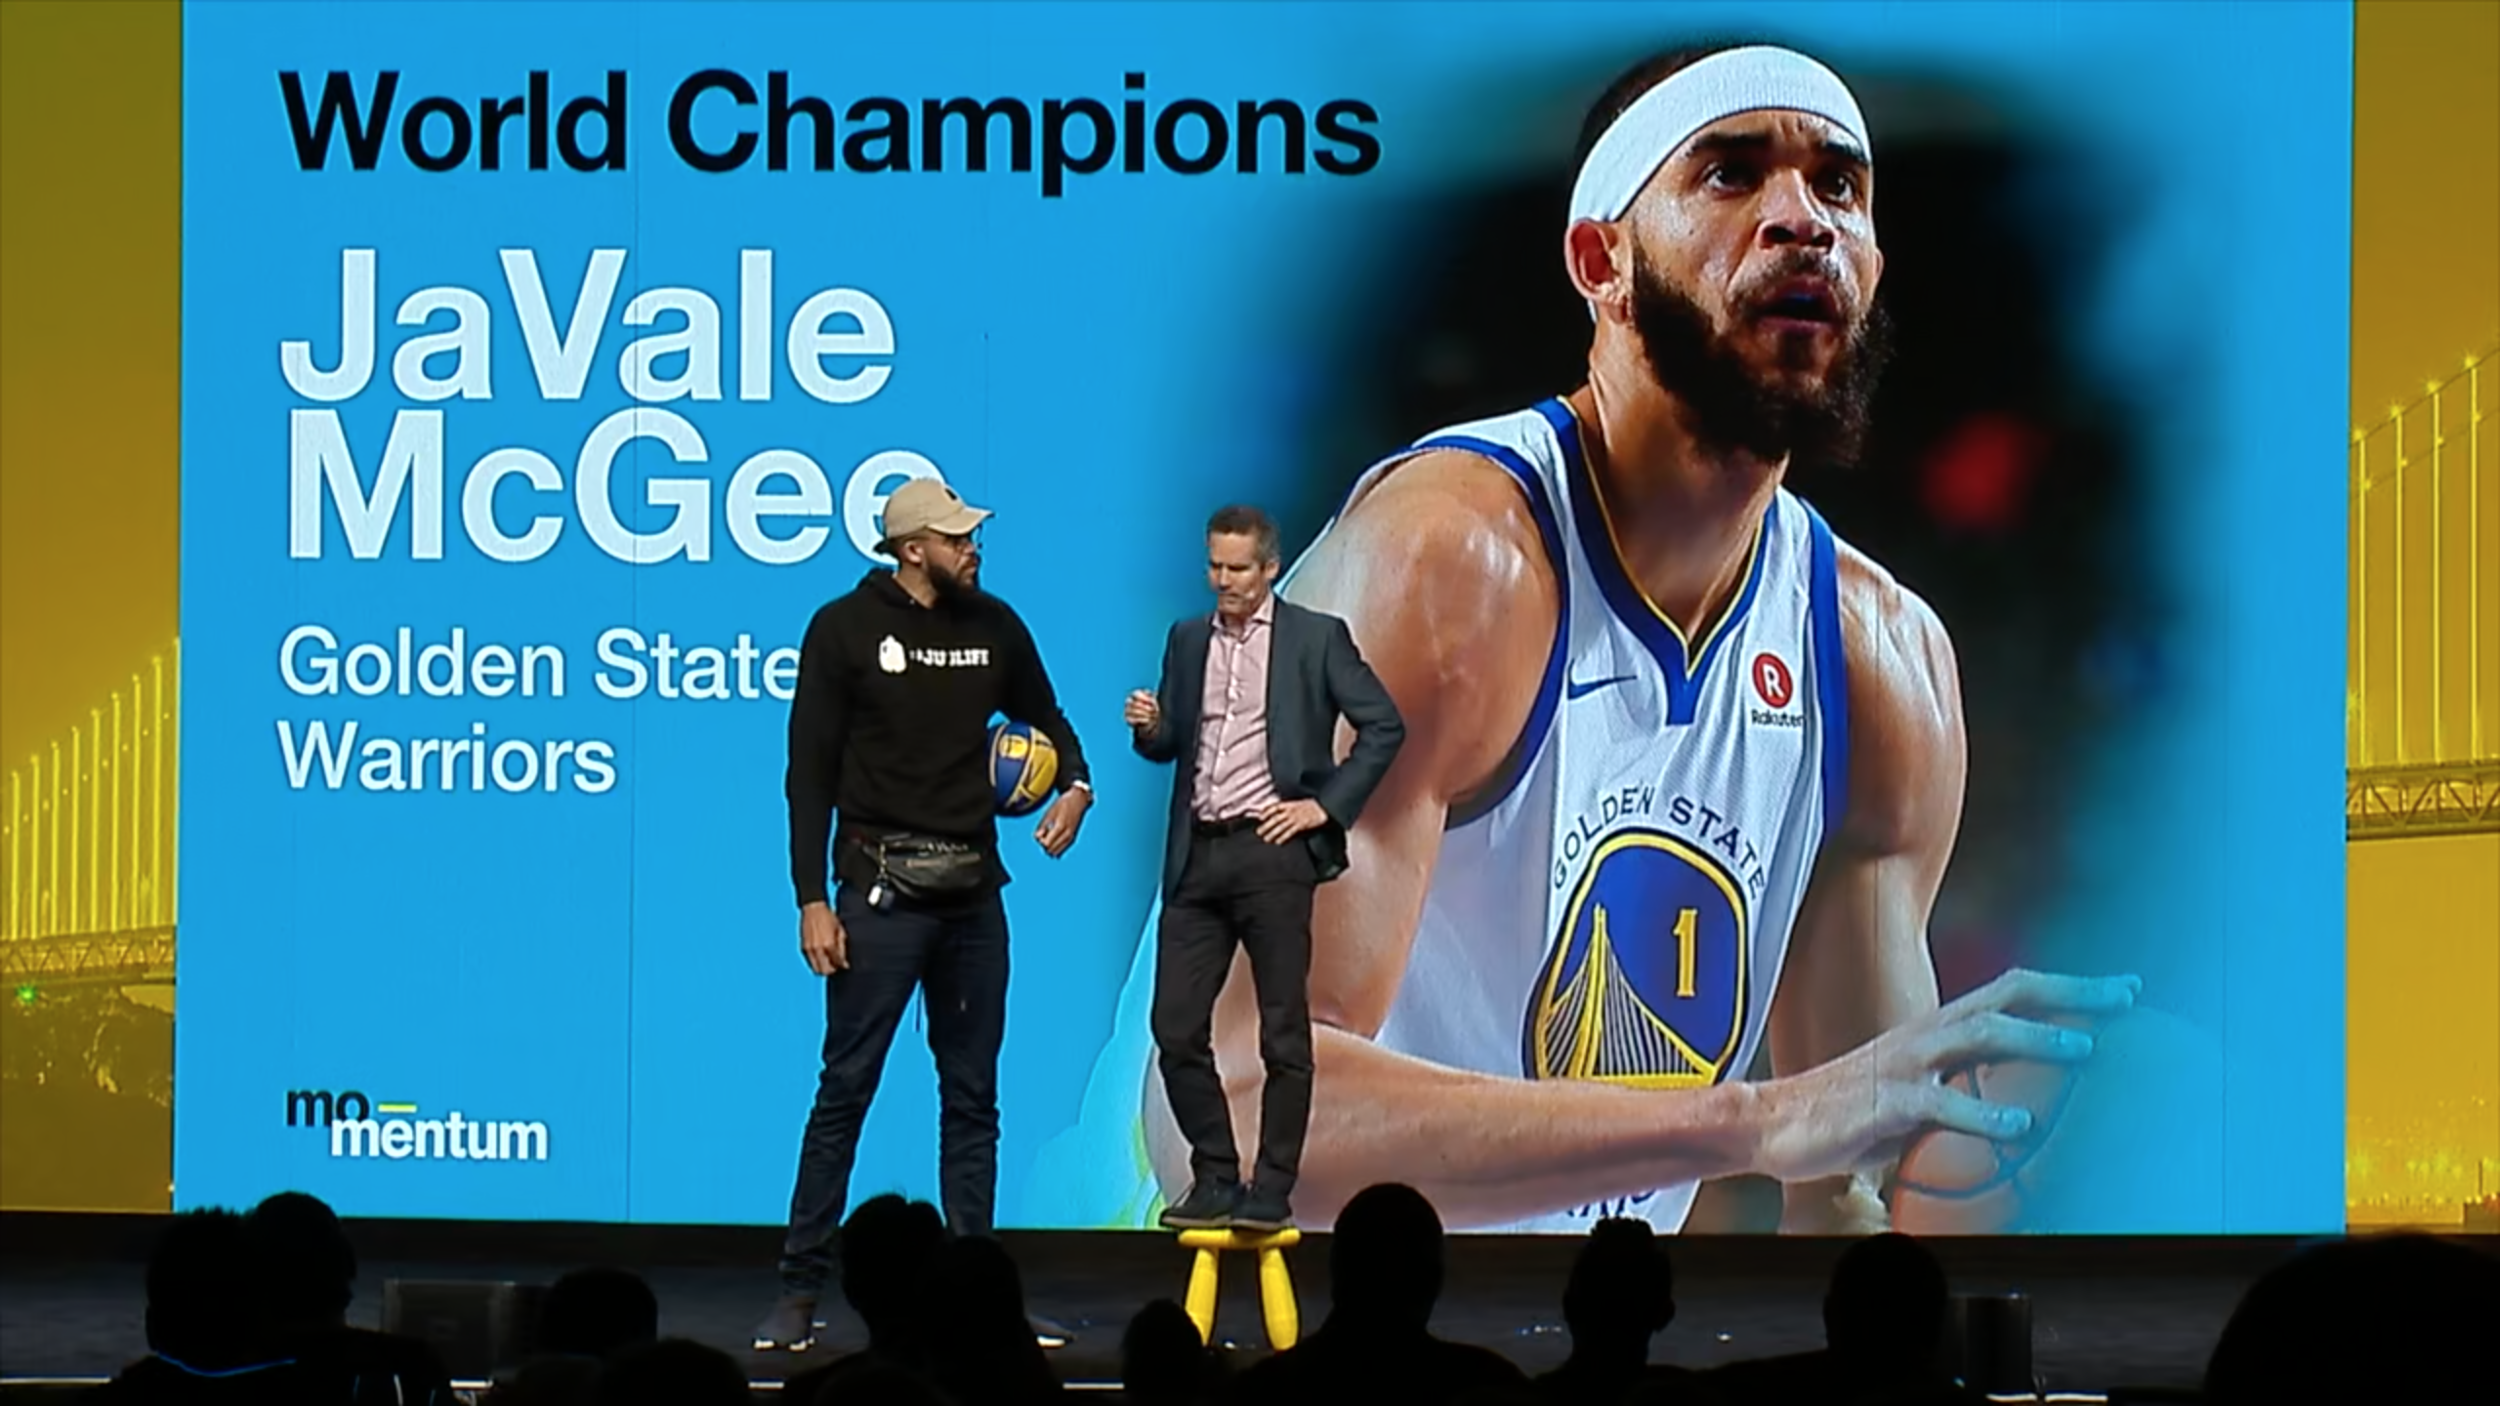 docusign_javalemcgee.png